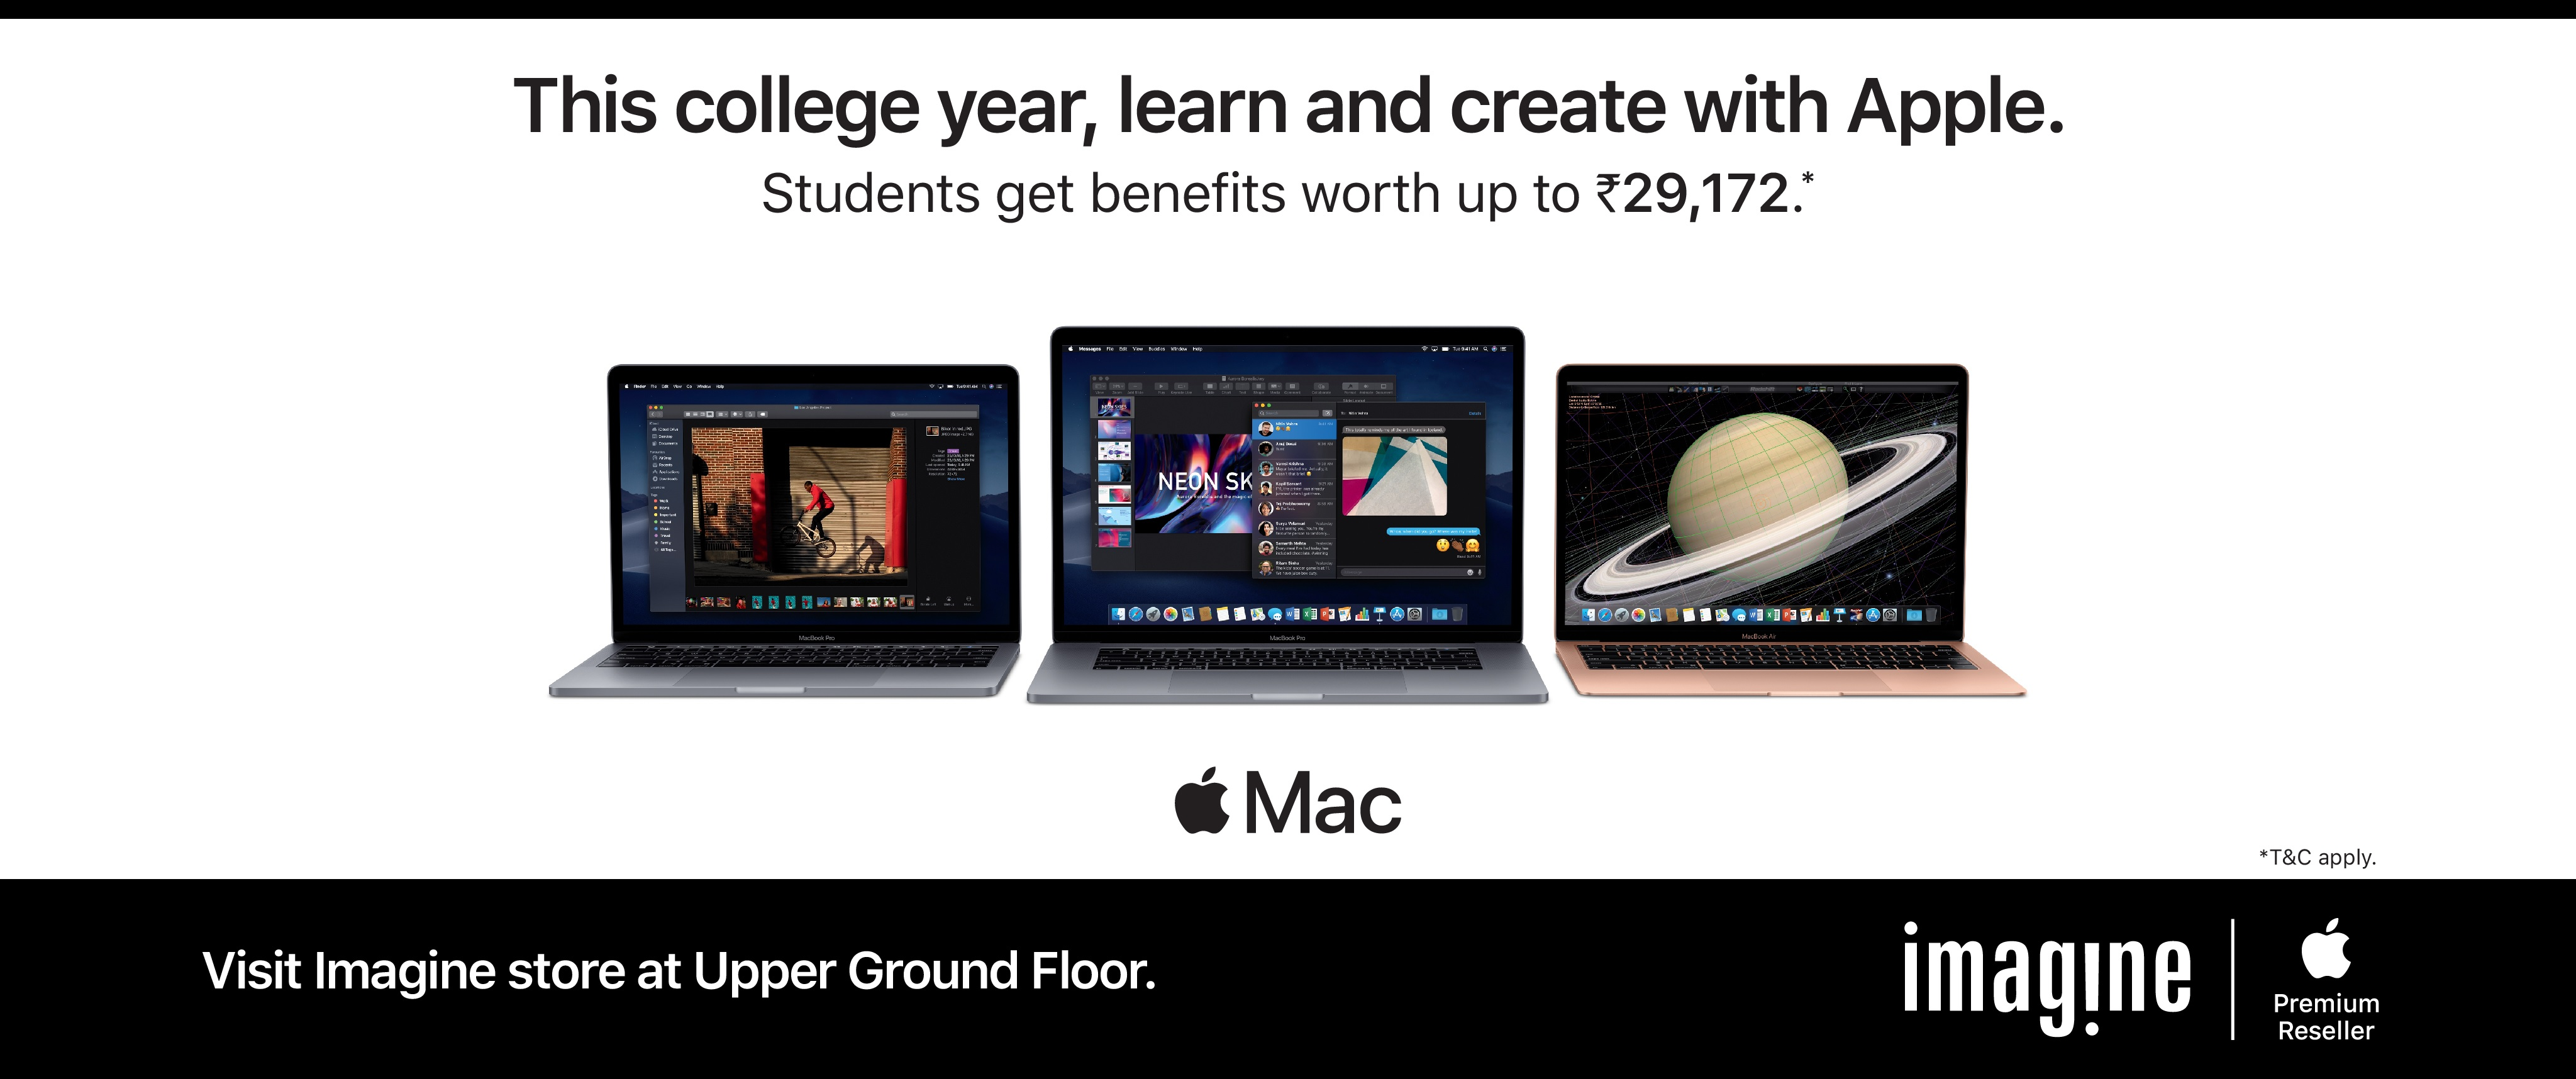 Apple | This College Year,Learn And Create With Apple